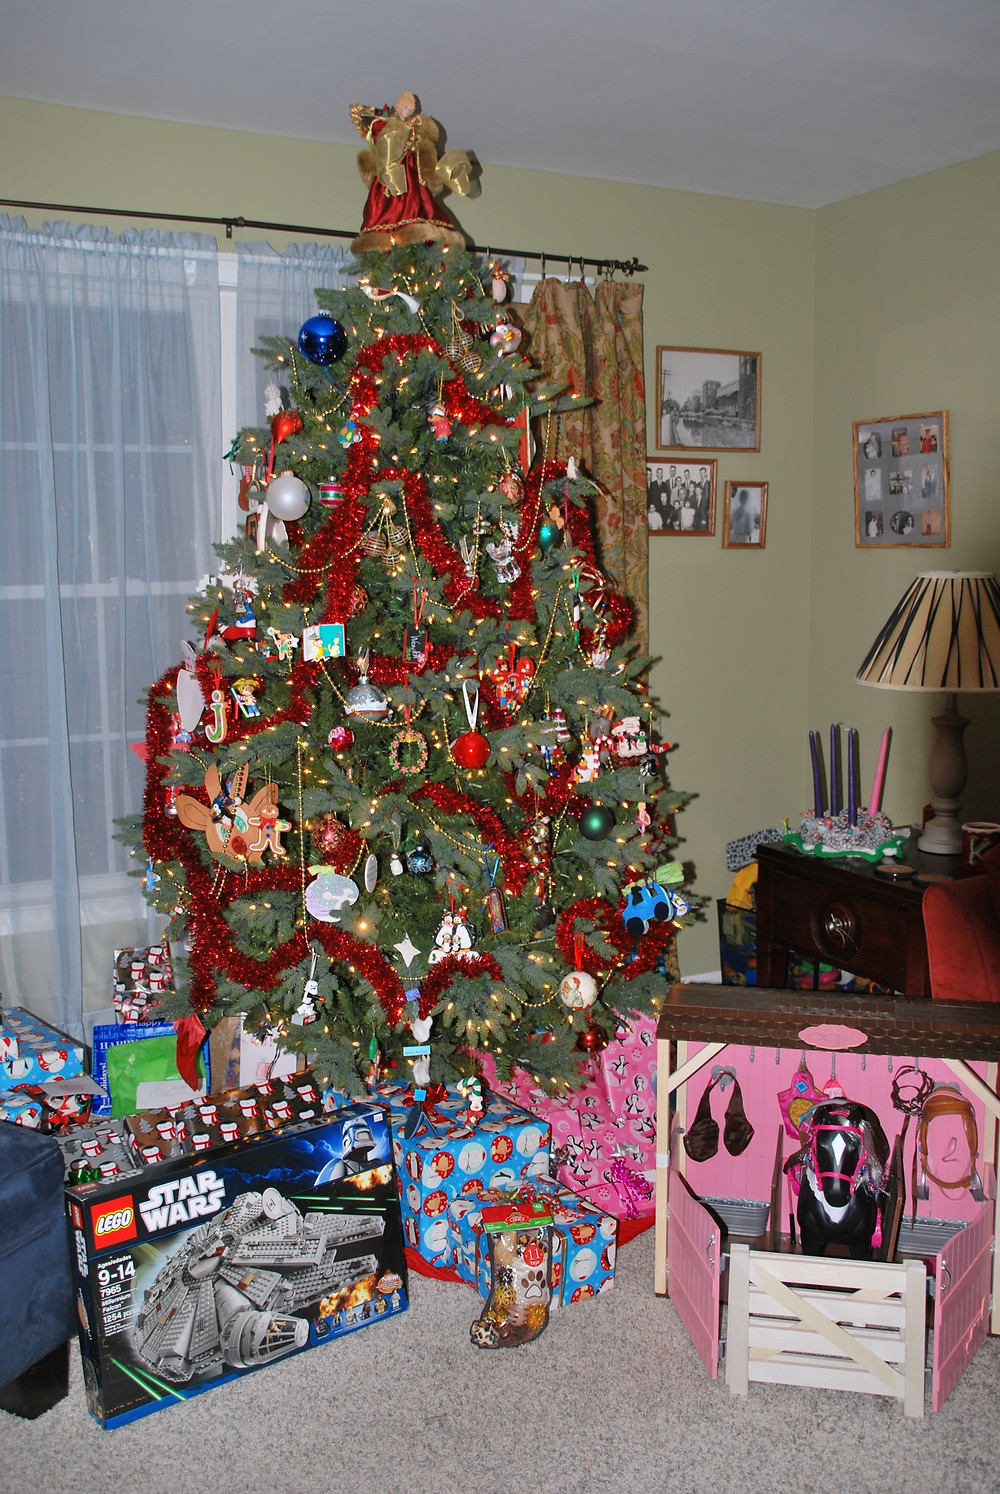 Christmas tree with unwrapped legos and American Girl stable and horse